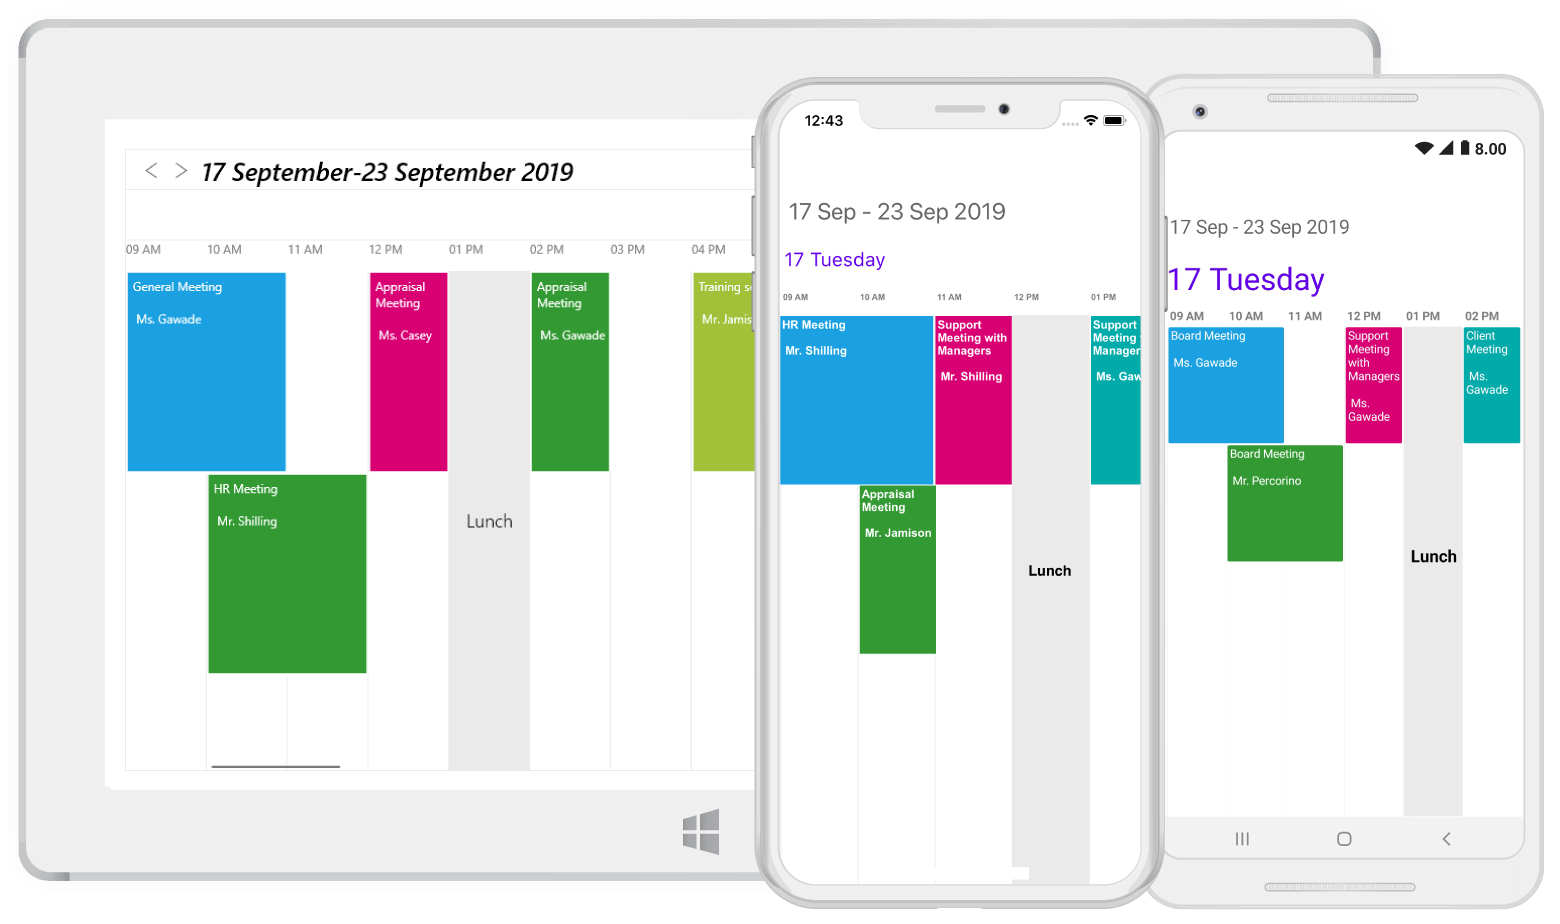 Timeline view in Xamarin.Forms Scheduler